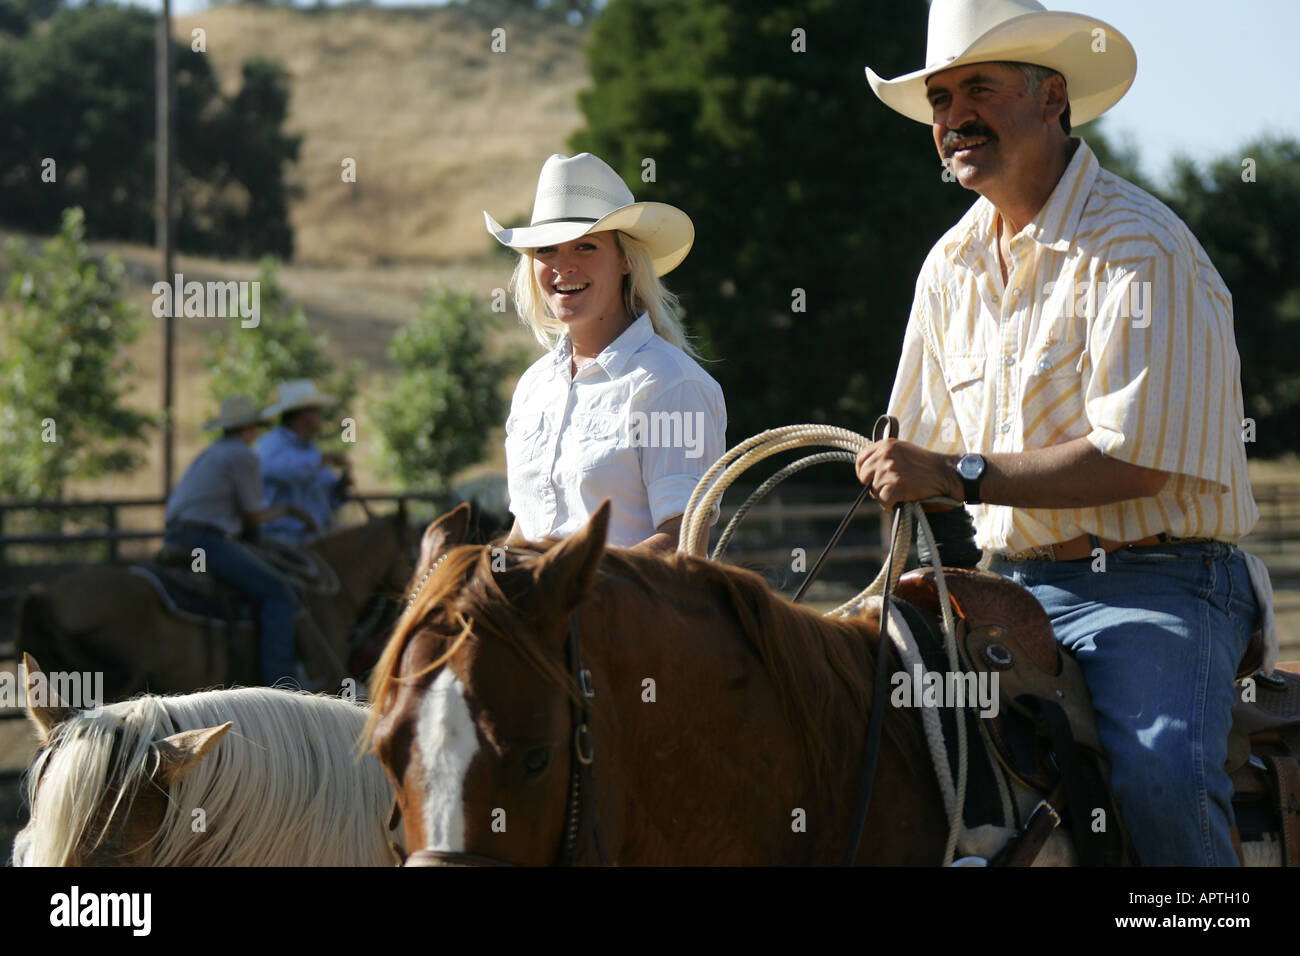 COWBOYS, KALIFORNIEN, UNS, USA Stockfoto